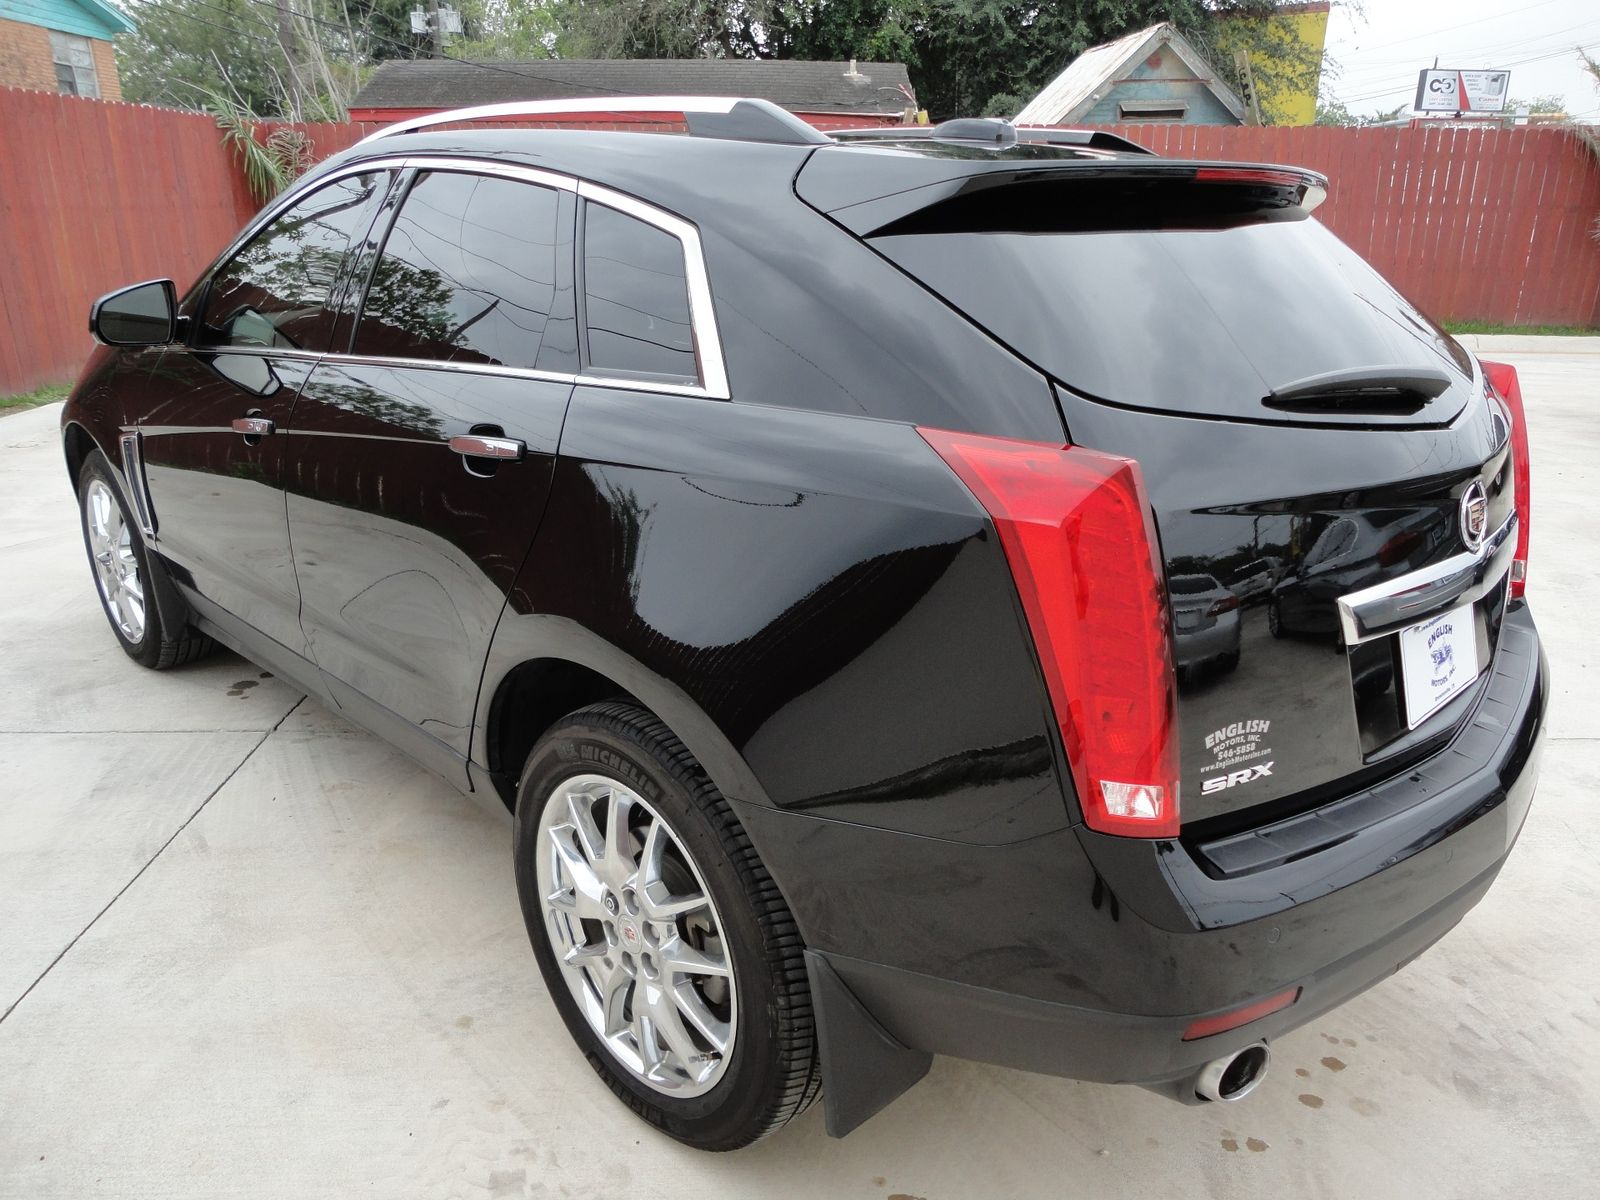 srx used of cadillac vehicle review expert